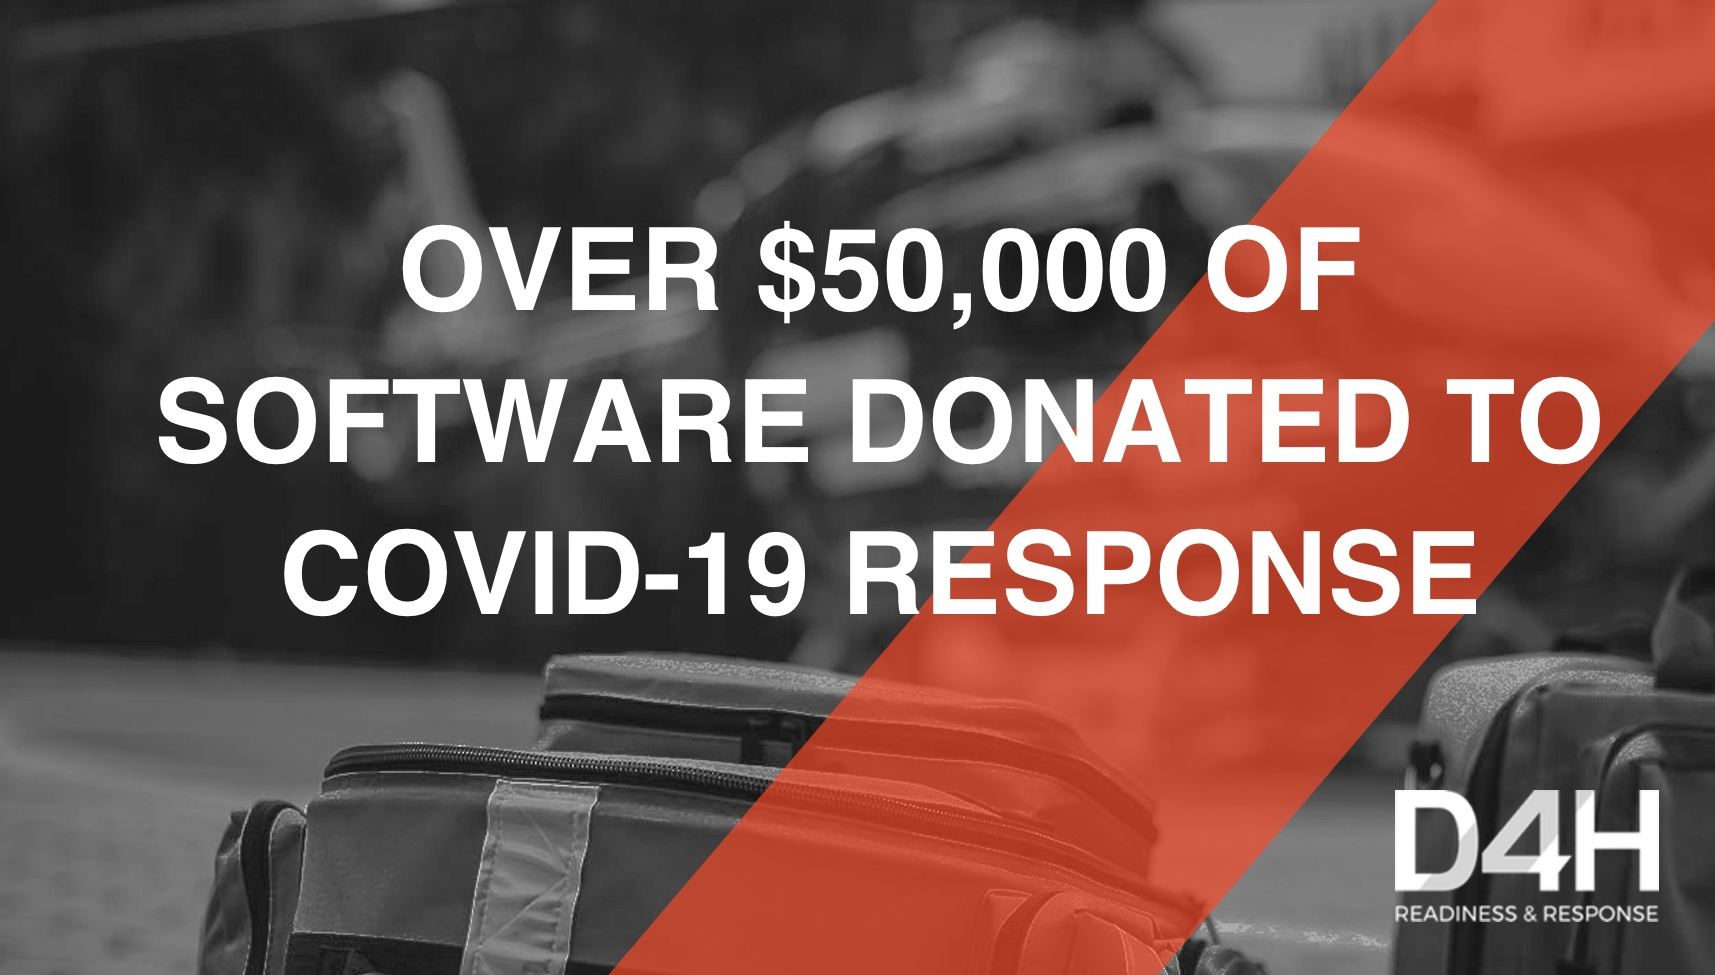 Over $50,000 of Software Donated To COVID-19 Response